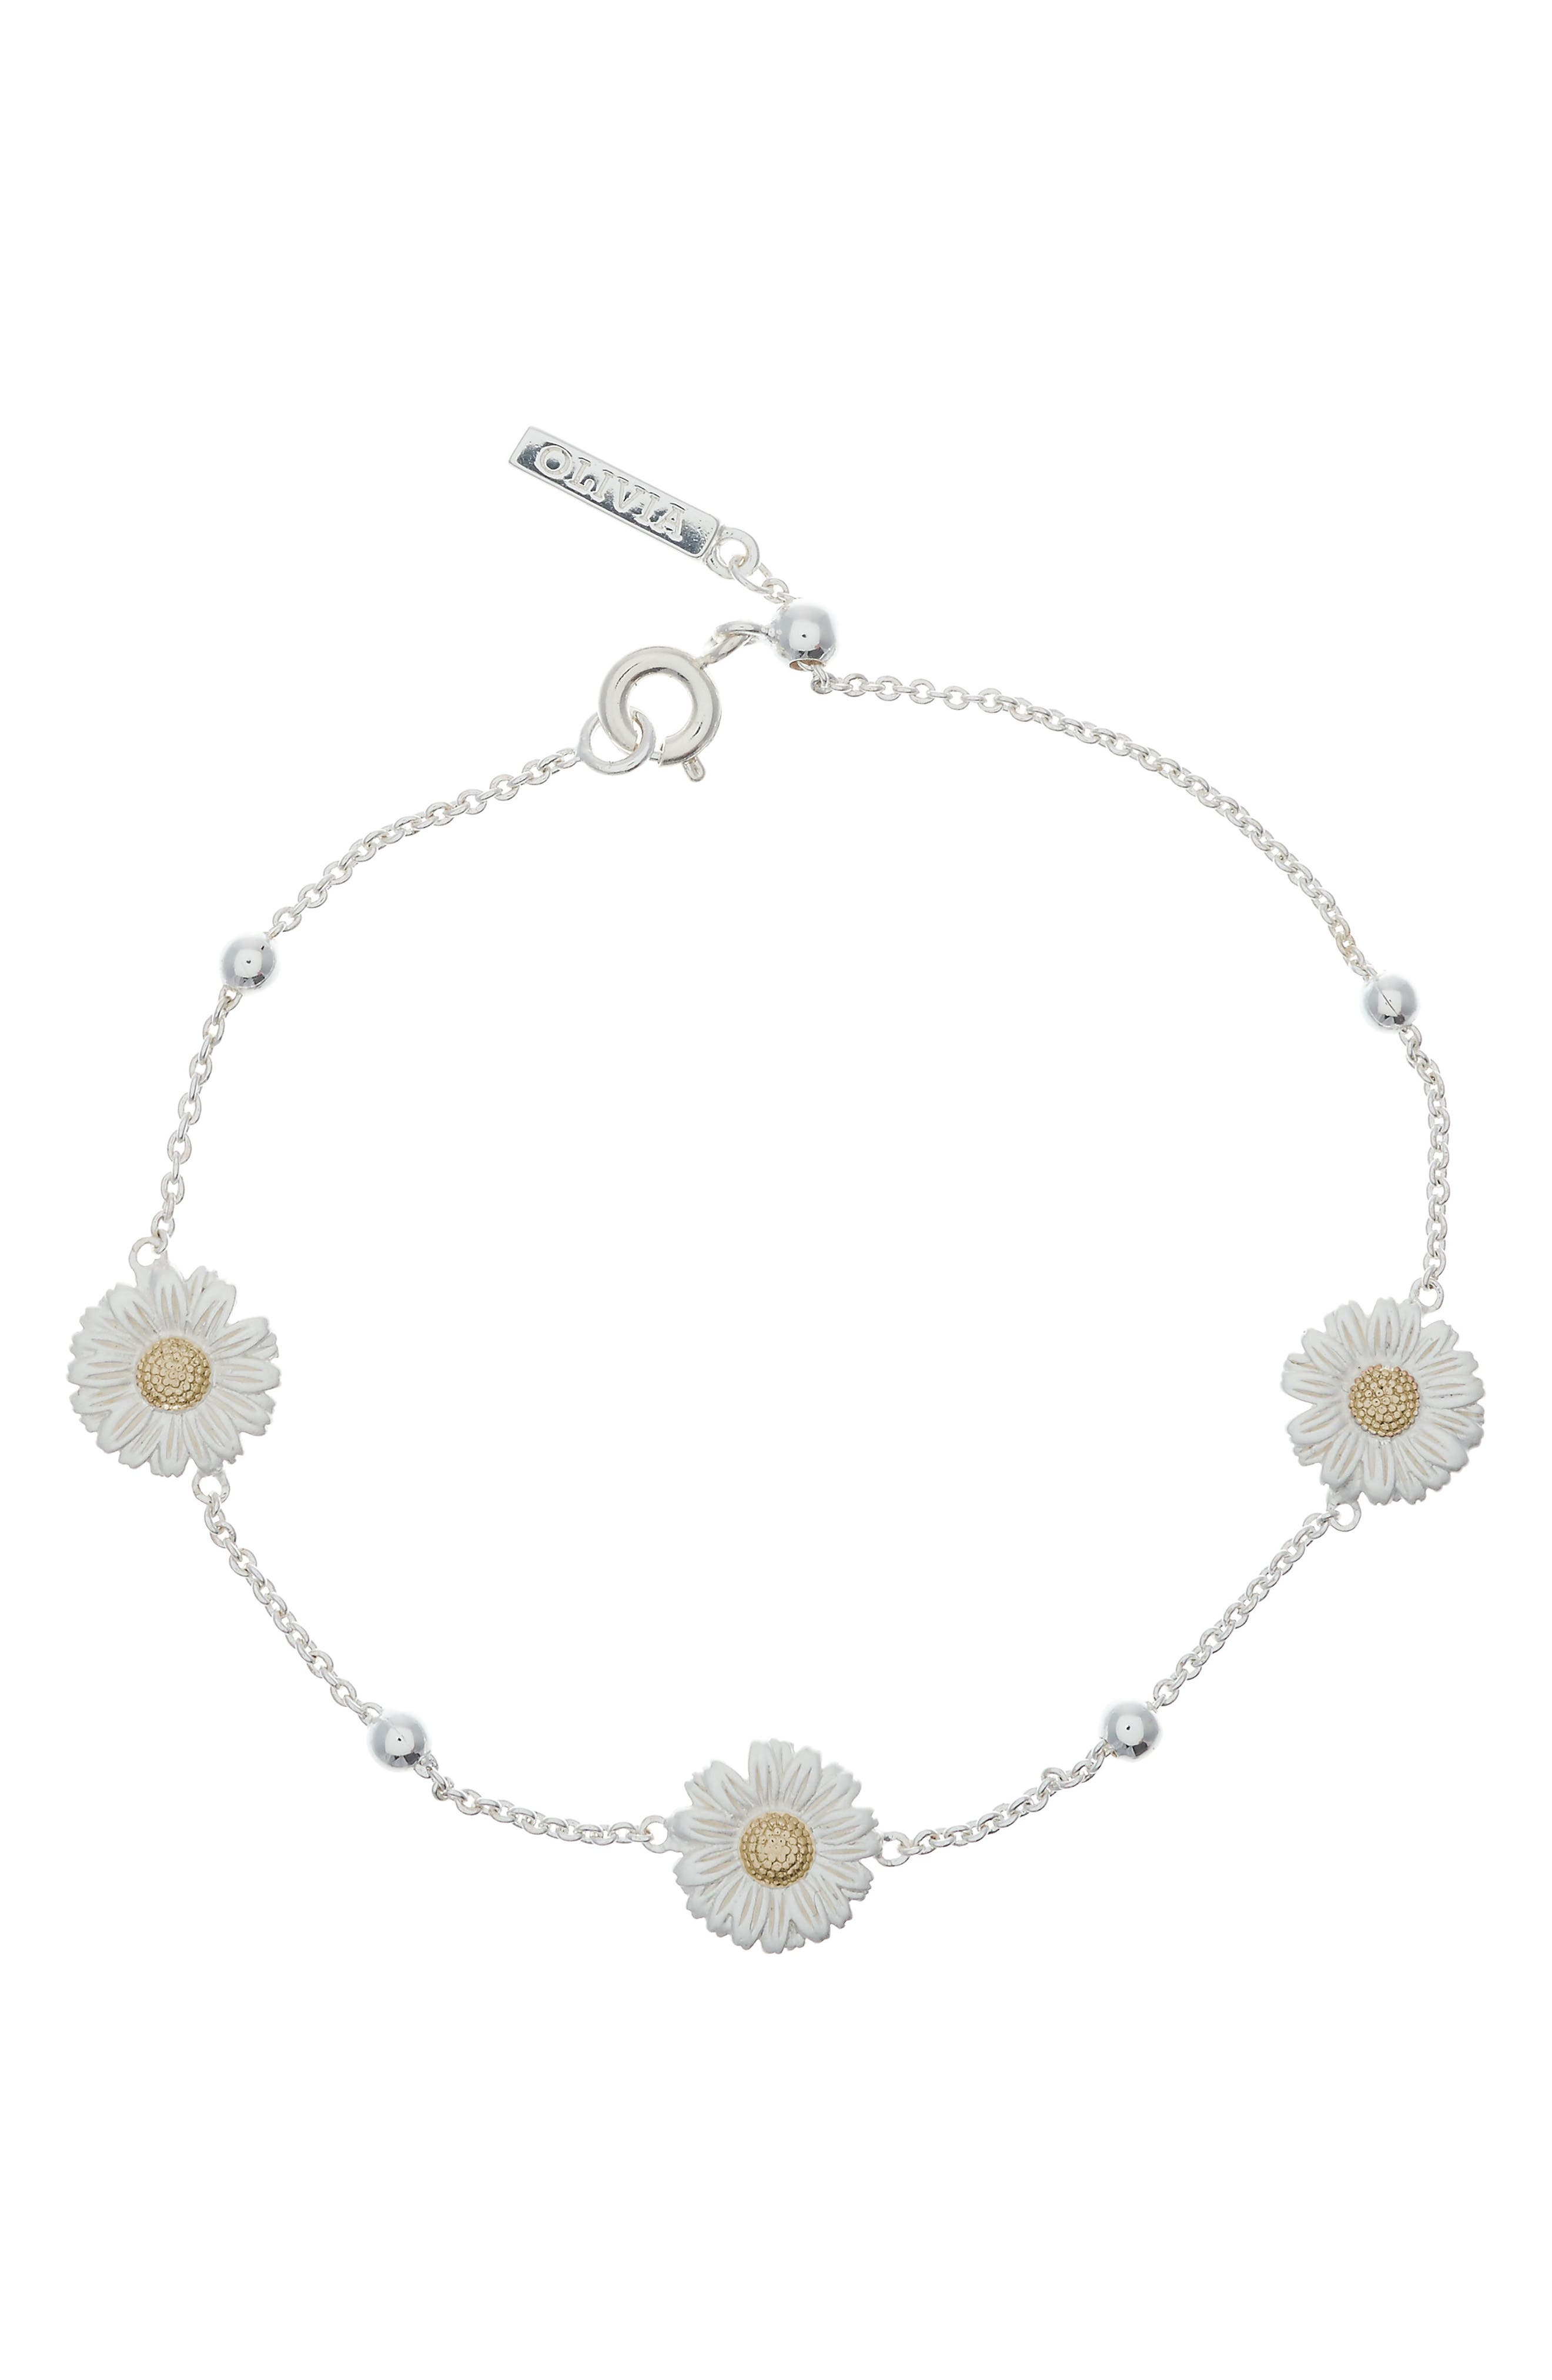 3D Daisy Ball Chain Bracelet,                         Main,                         color, SILVER/ GOLD